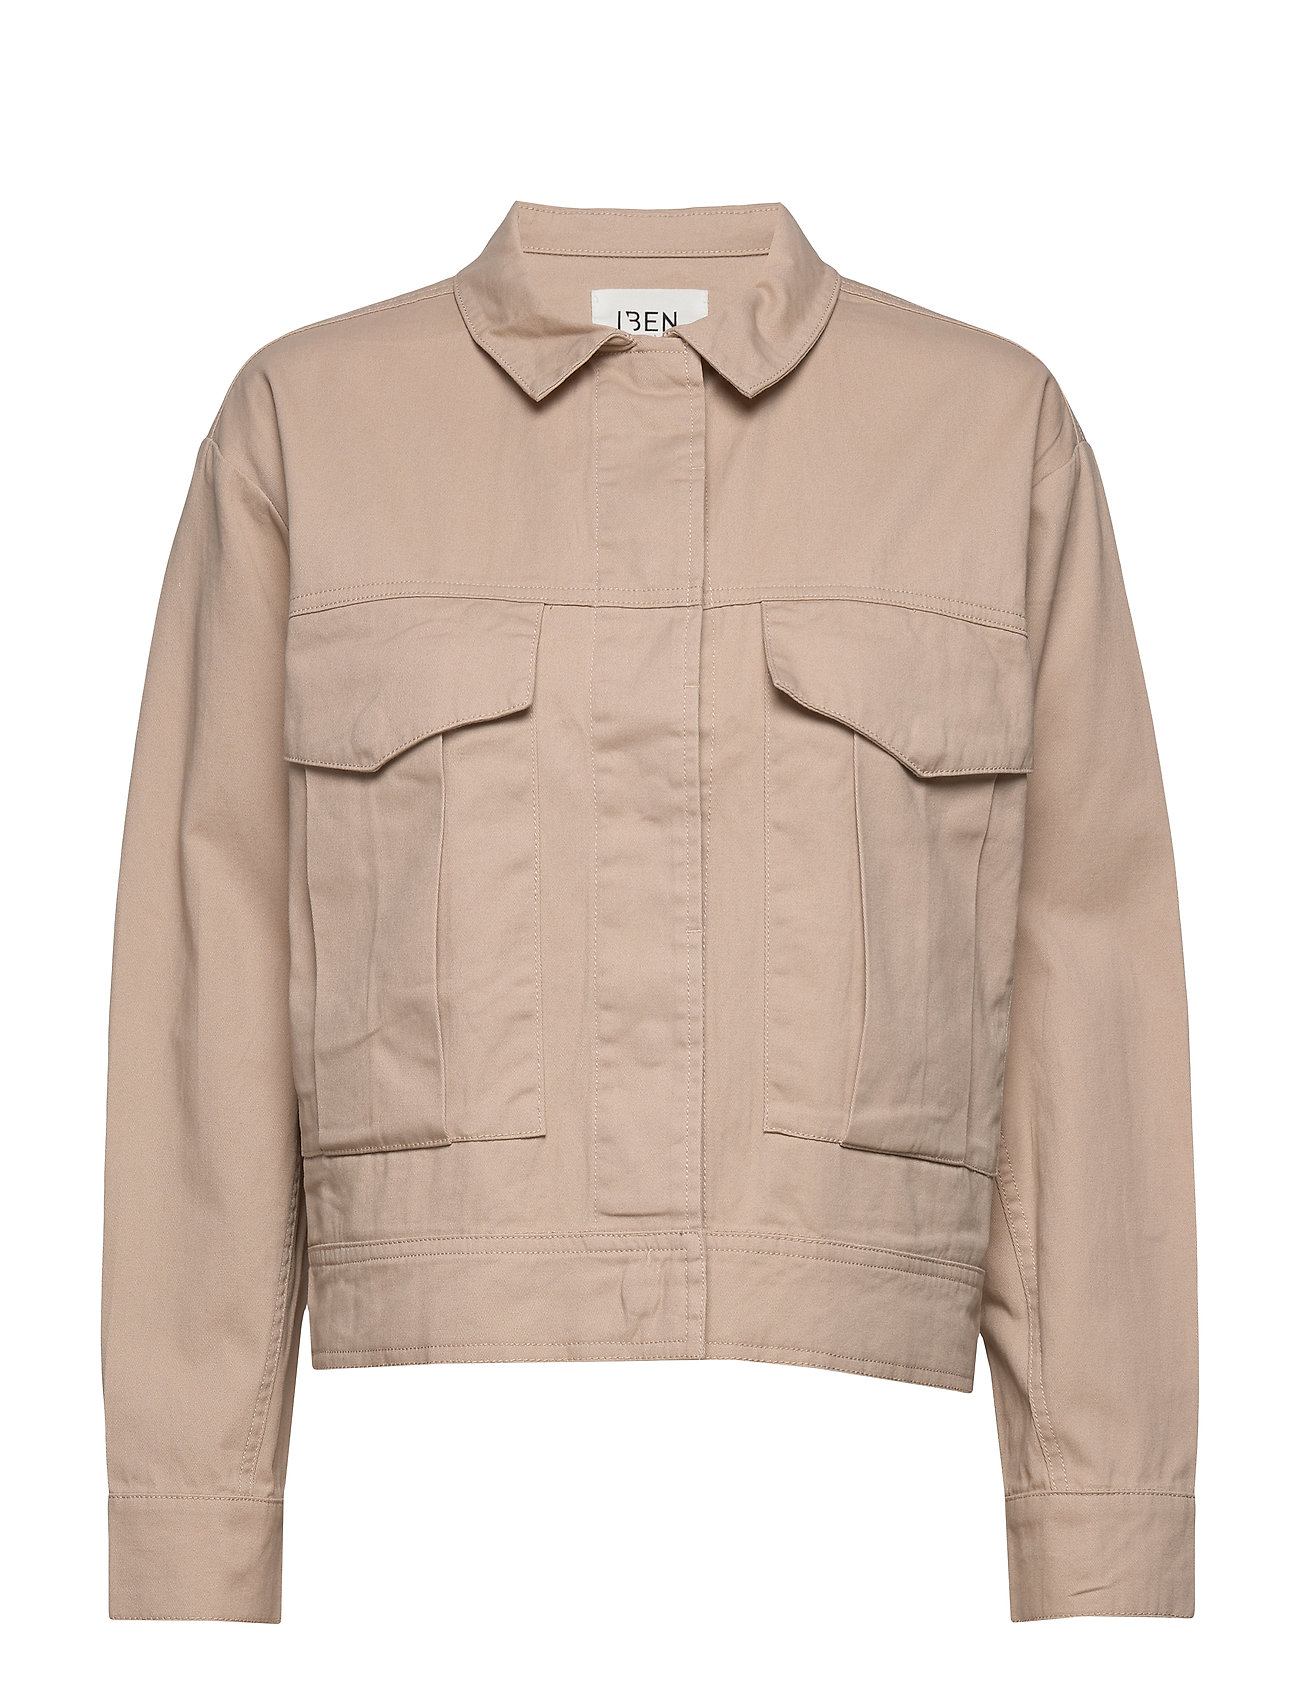 Image of Camilo Jacket Awn Outerwear Jackets Utility Jackets Beige IBEN (3406268745)